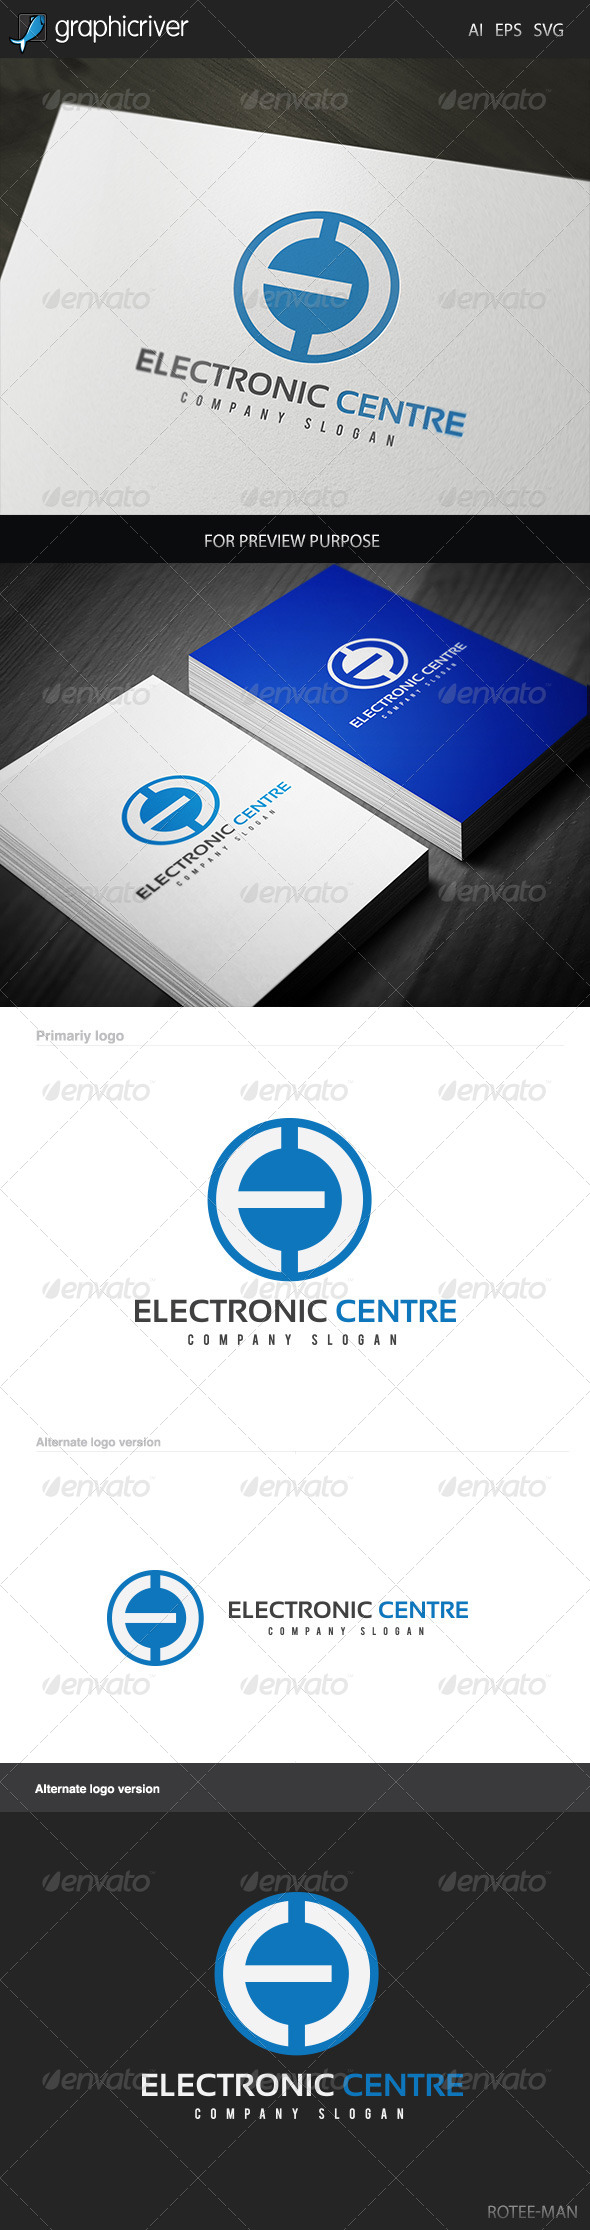 GraphicRiver Electronic Centre Logo 5887844